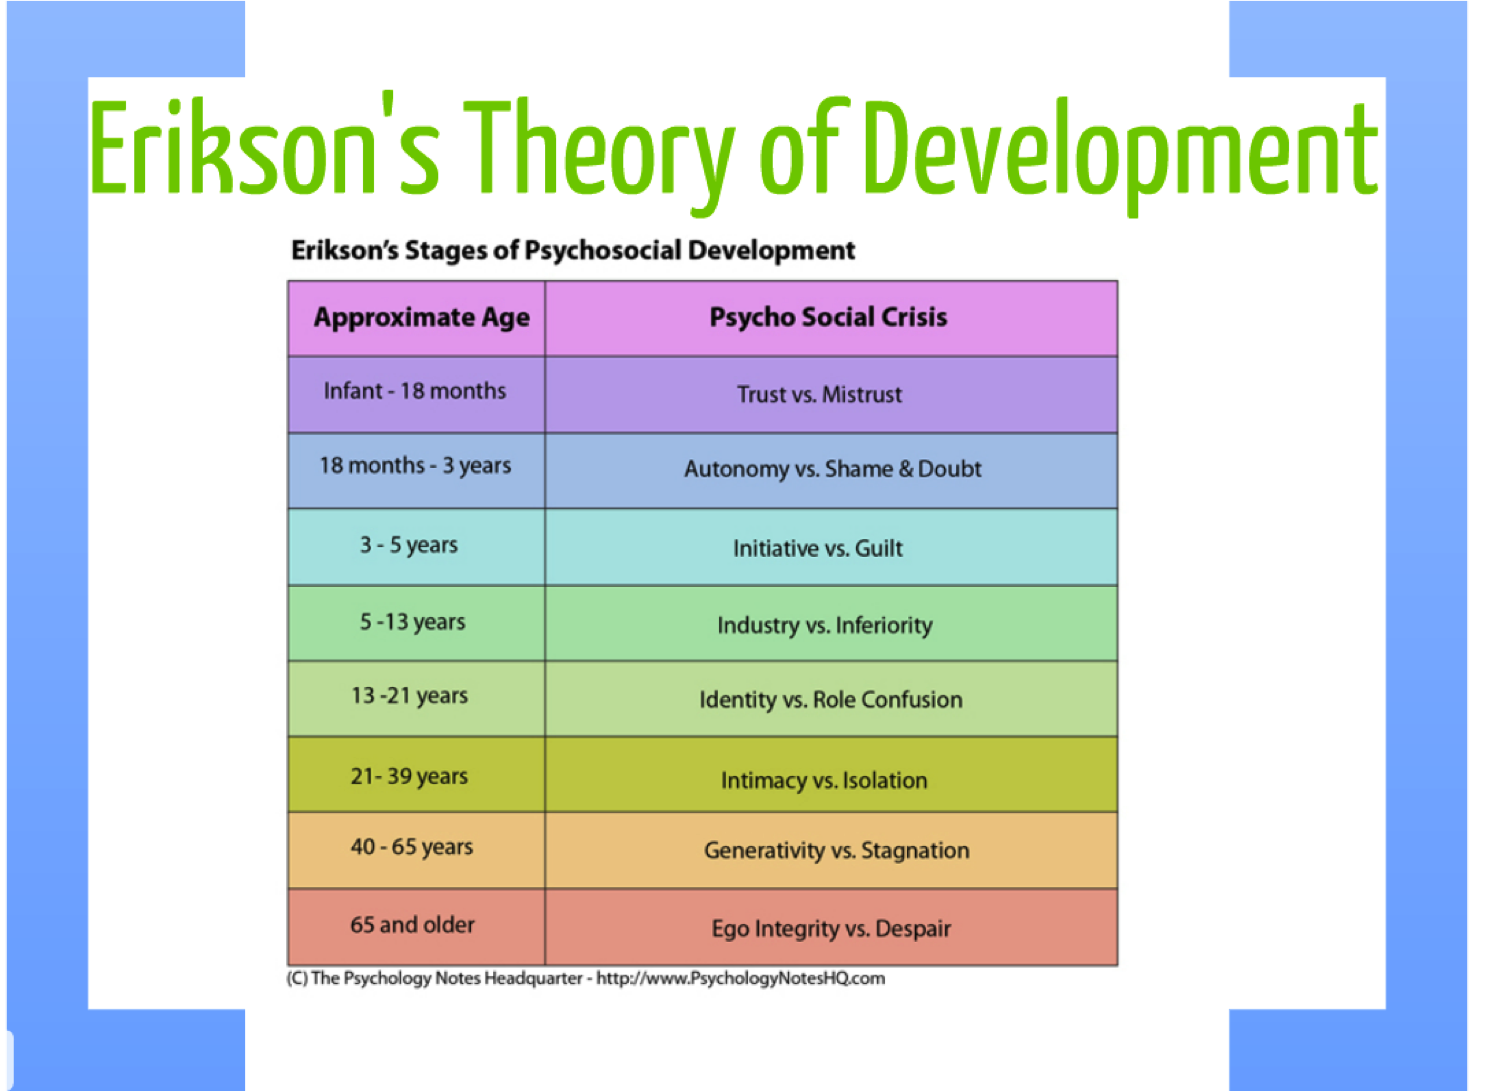 17 best images about understanding child development 17 best images about understanding child development child rearing practices developmental psychology and the teacher